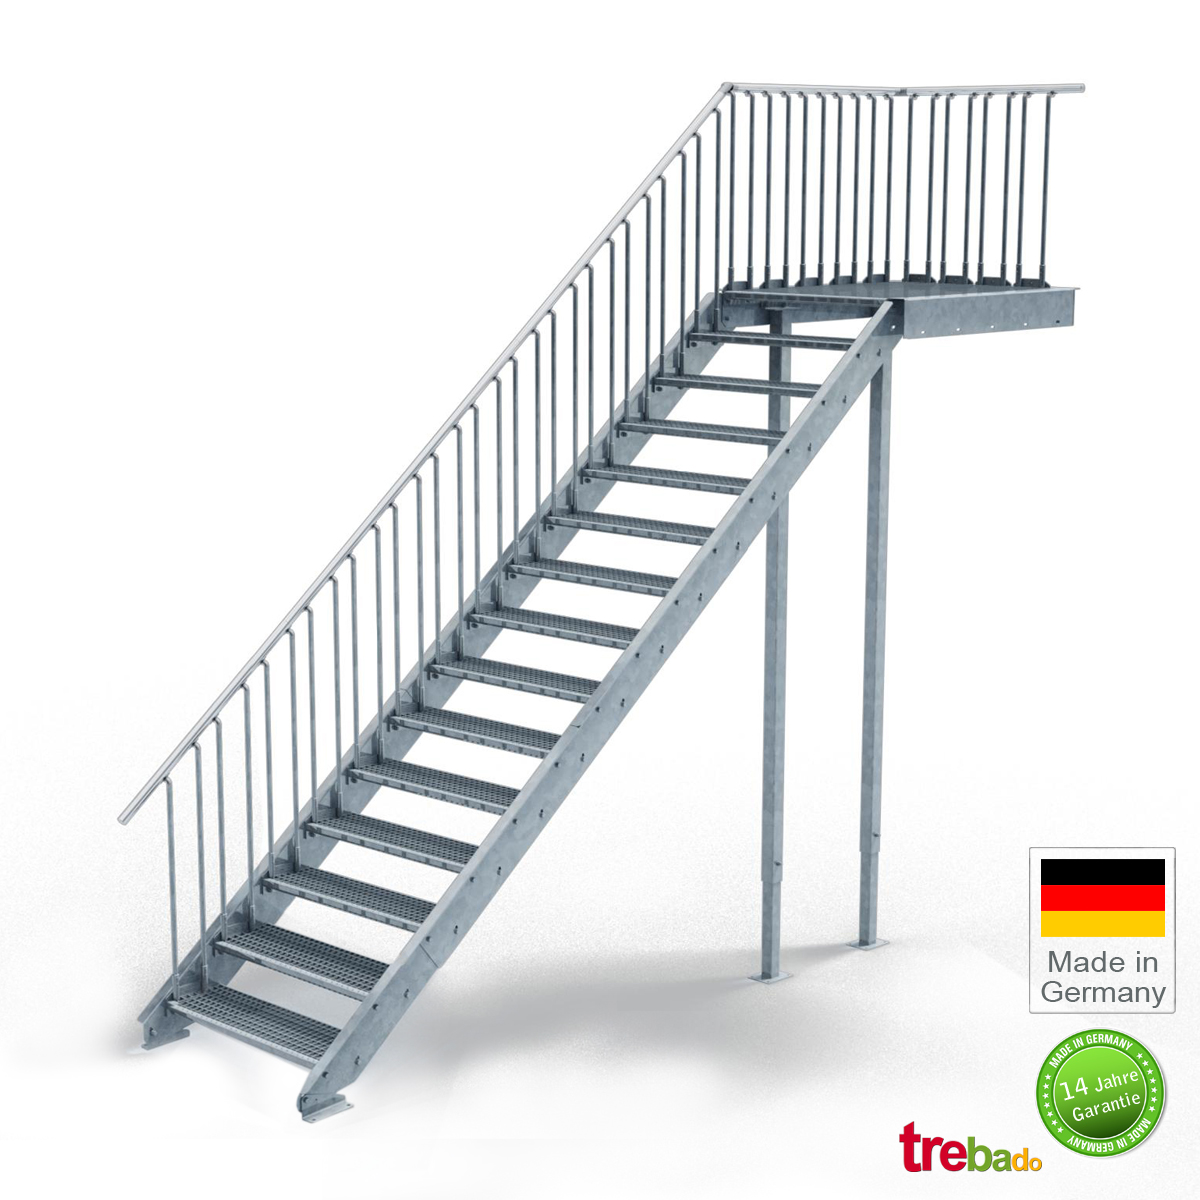 au entreppe gerade 15 steigungen laufweite 100 cm treppen bausatz do it yourself. Black Bedroom Furniture Sets. Home Design Ideas